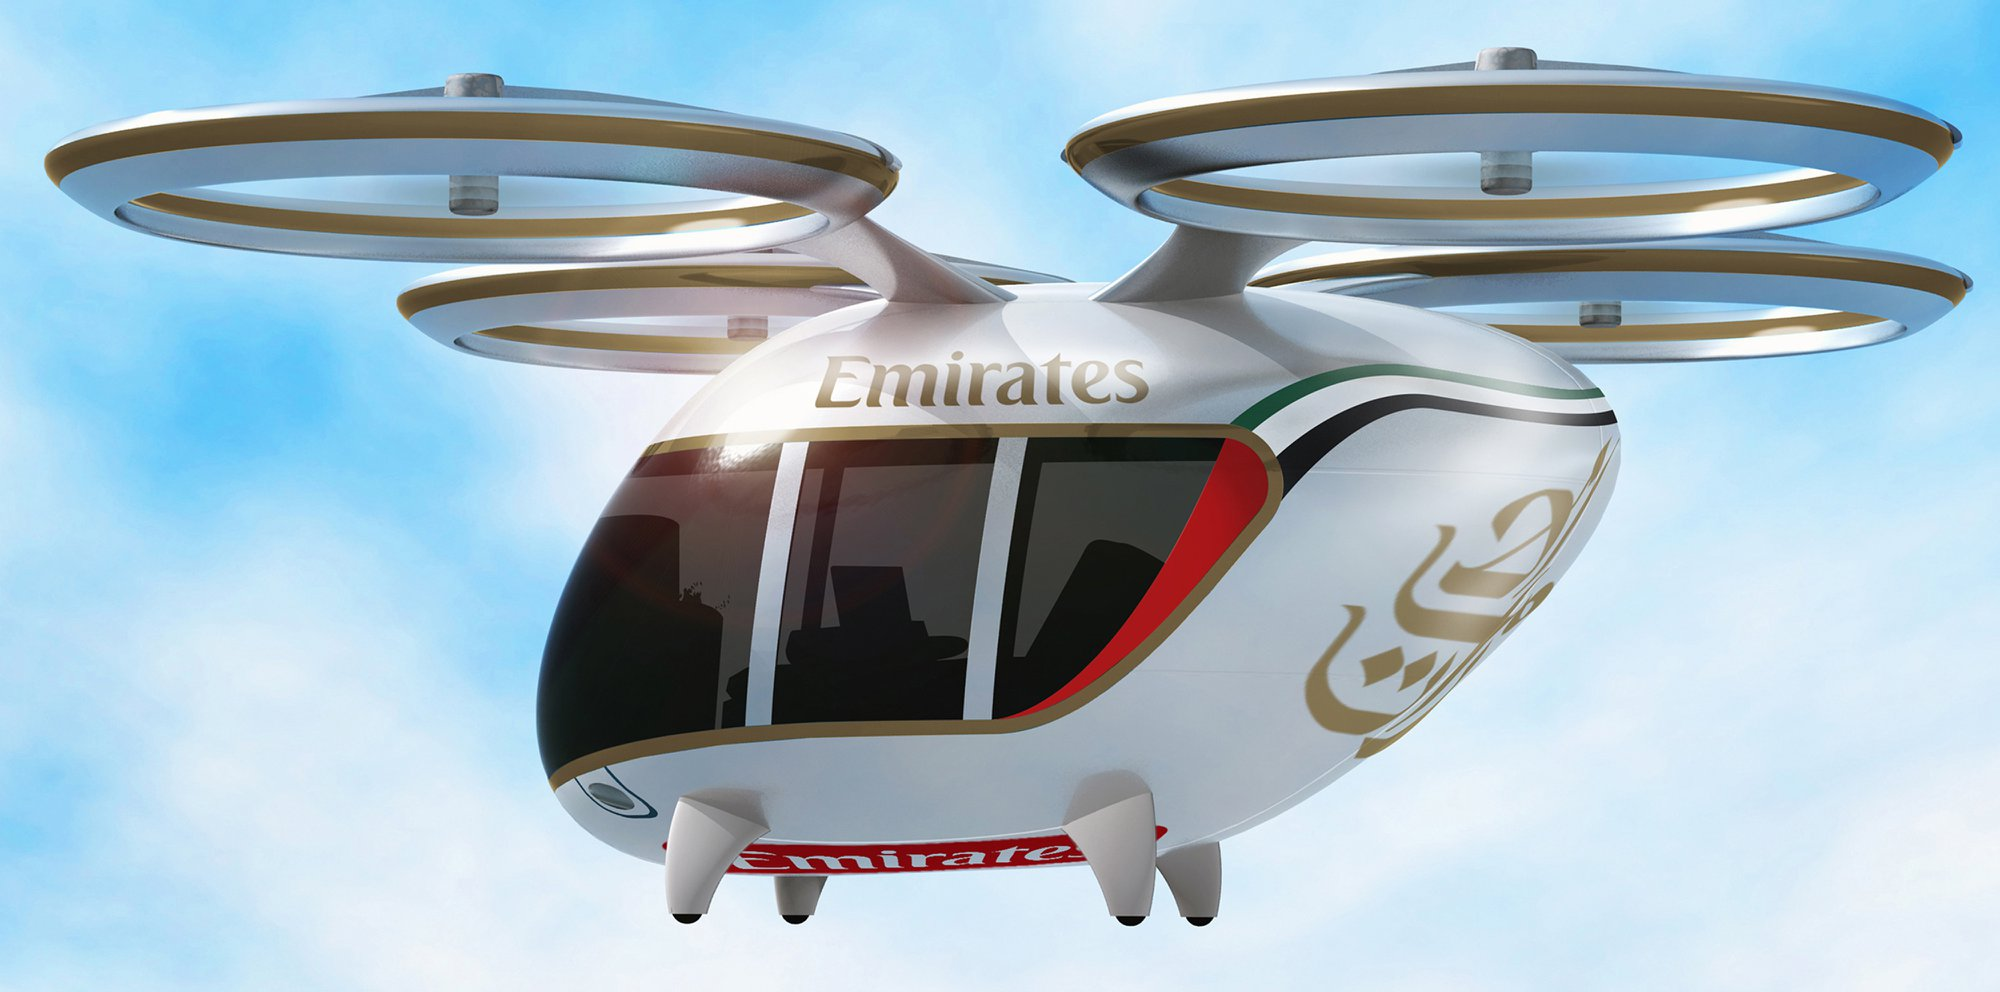 Emirates Get's in the Spirit of April Fools... Flying Drone Anyone?